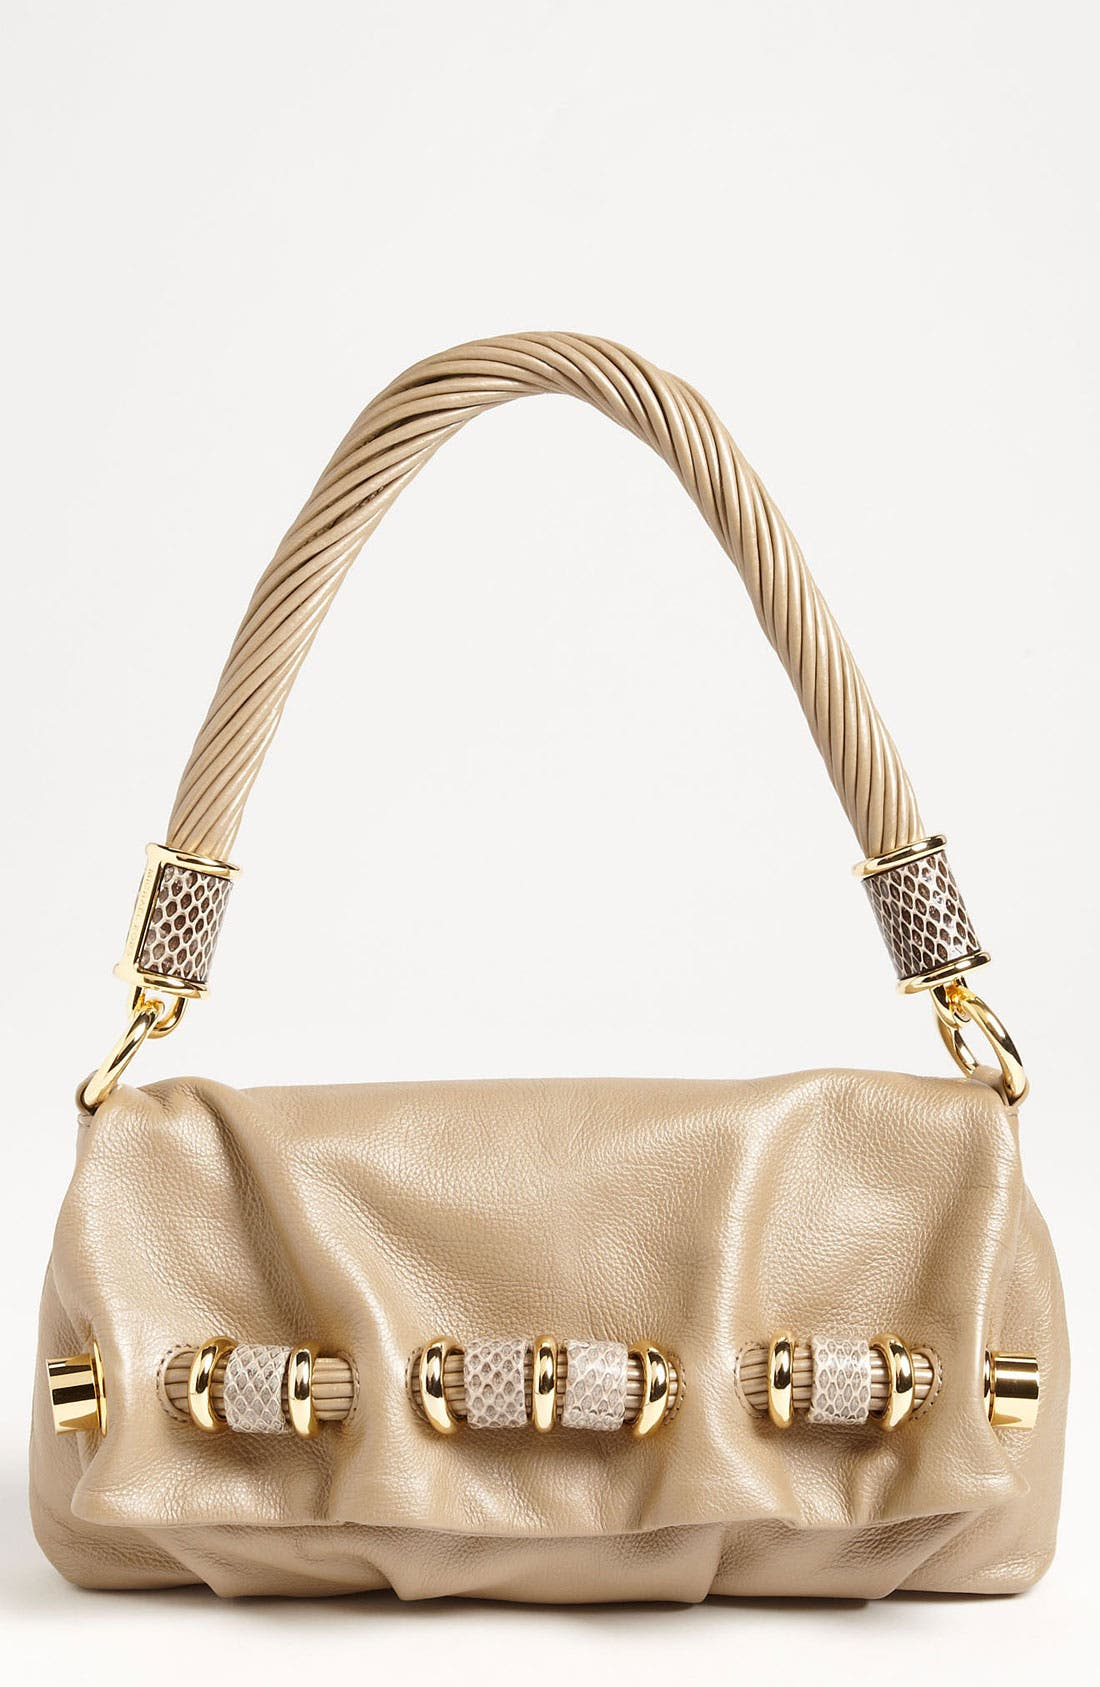 Alternate Image 1 Selected - Michael Kors 'Tonne - Small' Calfskin Leather Shoulder Bag